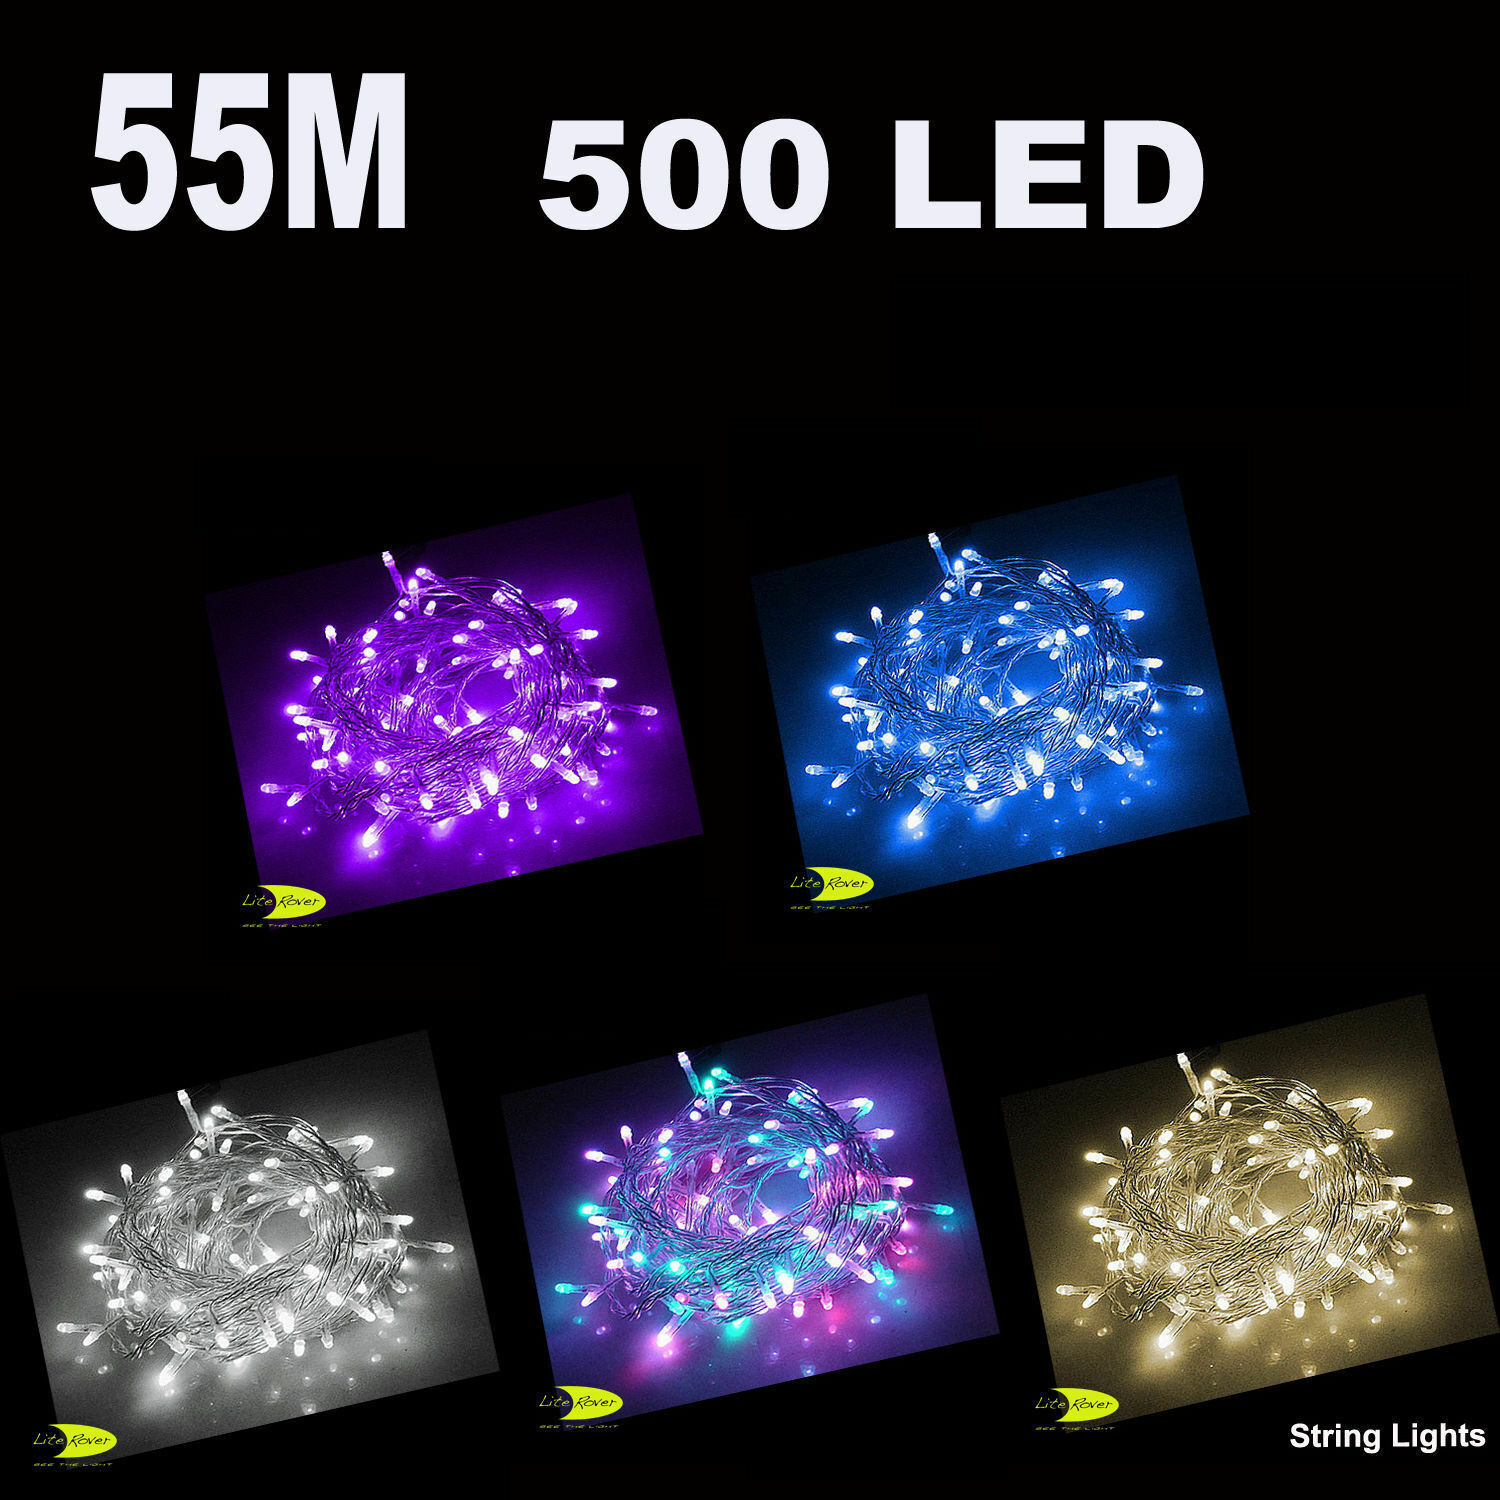 55m 500 LED 24 Volt Christmas Party Wedding Fairy String Light Rope Lights AUD 45.95 - PicClick AU